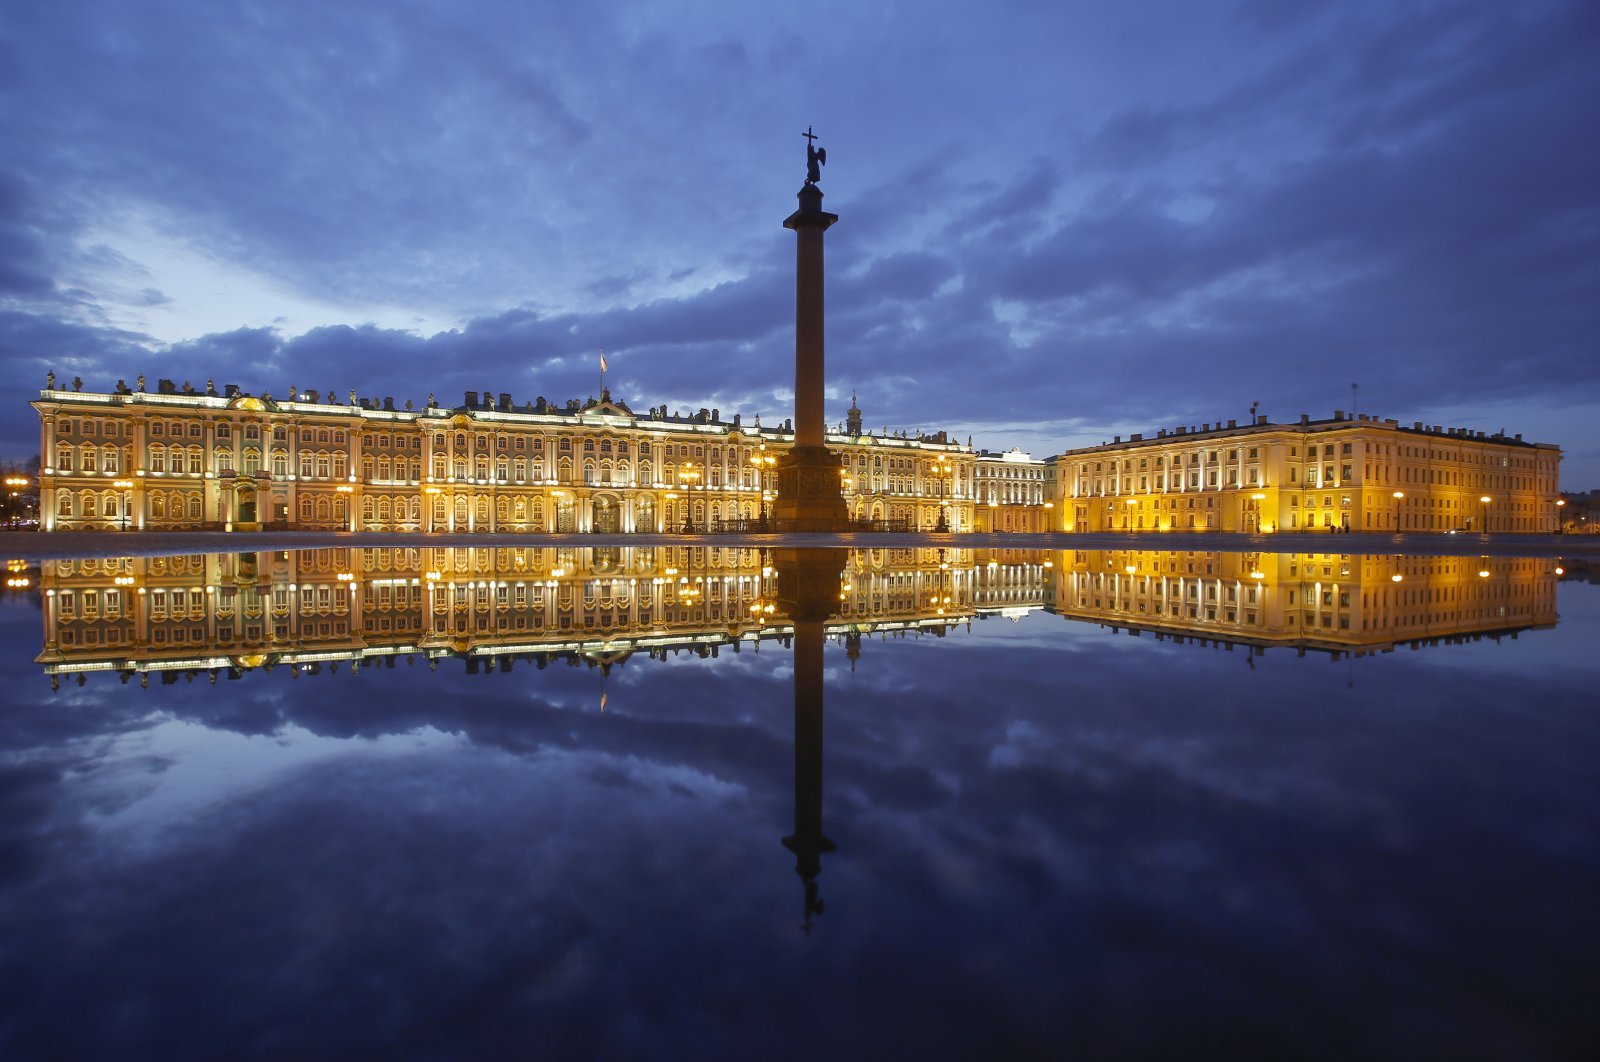 The Winter Palace and Alexander Column are reflected in a puddle after rain at Palace Square in St. Petersburg, Russia, Monday, April 27, 2020. (AP Photo)